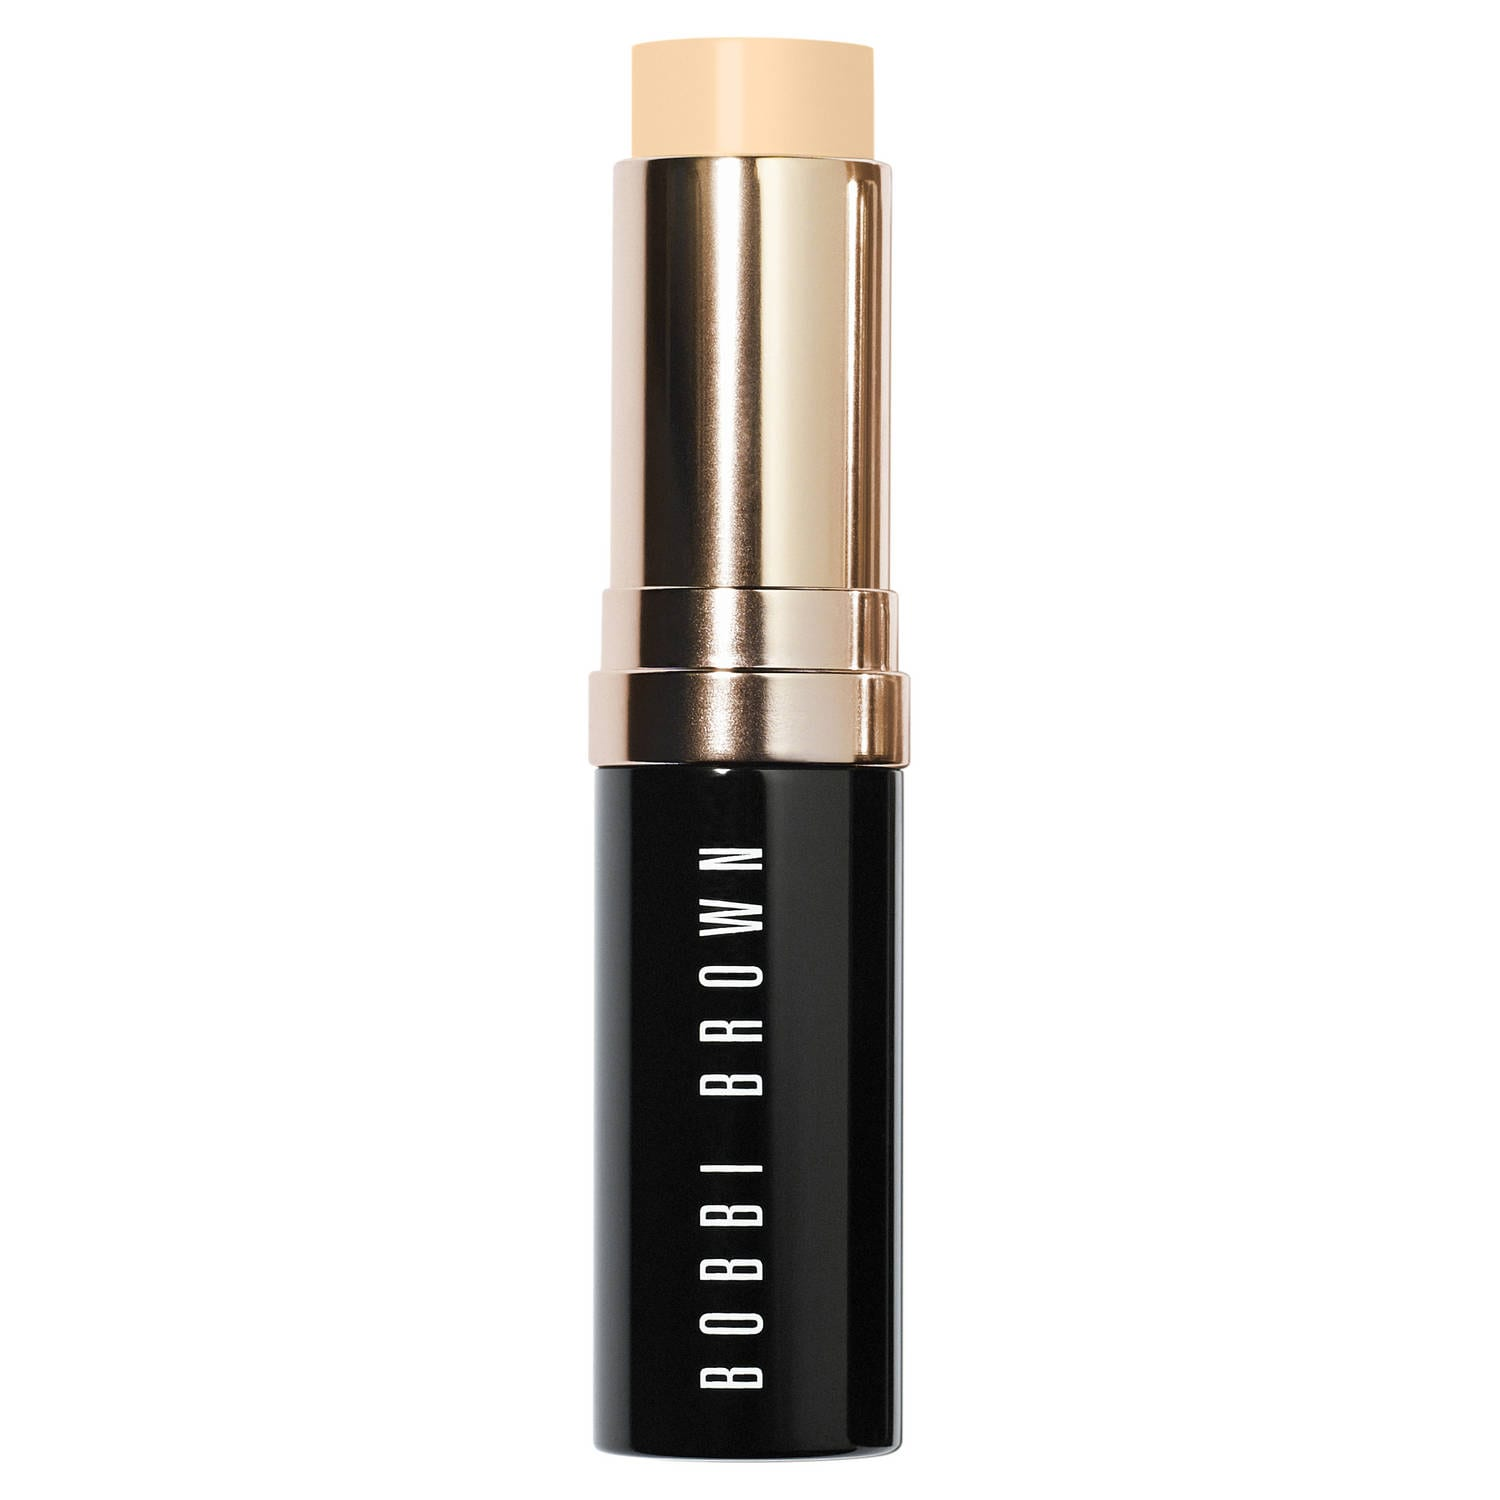 Fond de teint stick, BOBBI BROWN